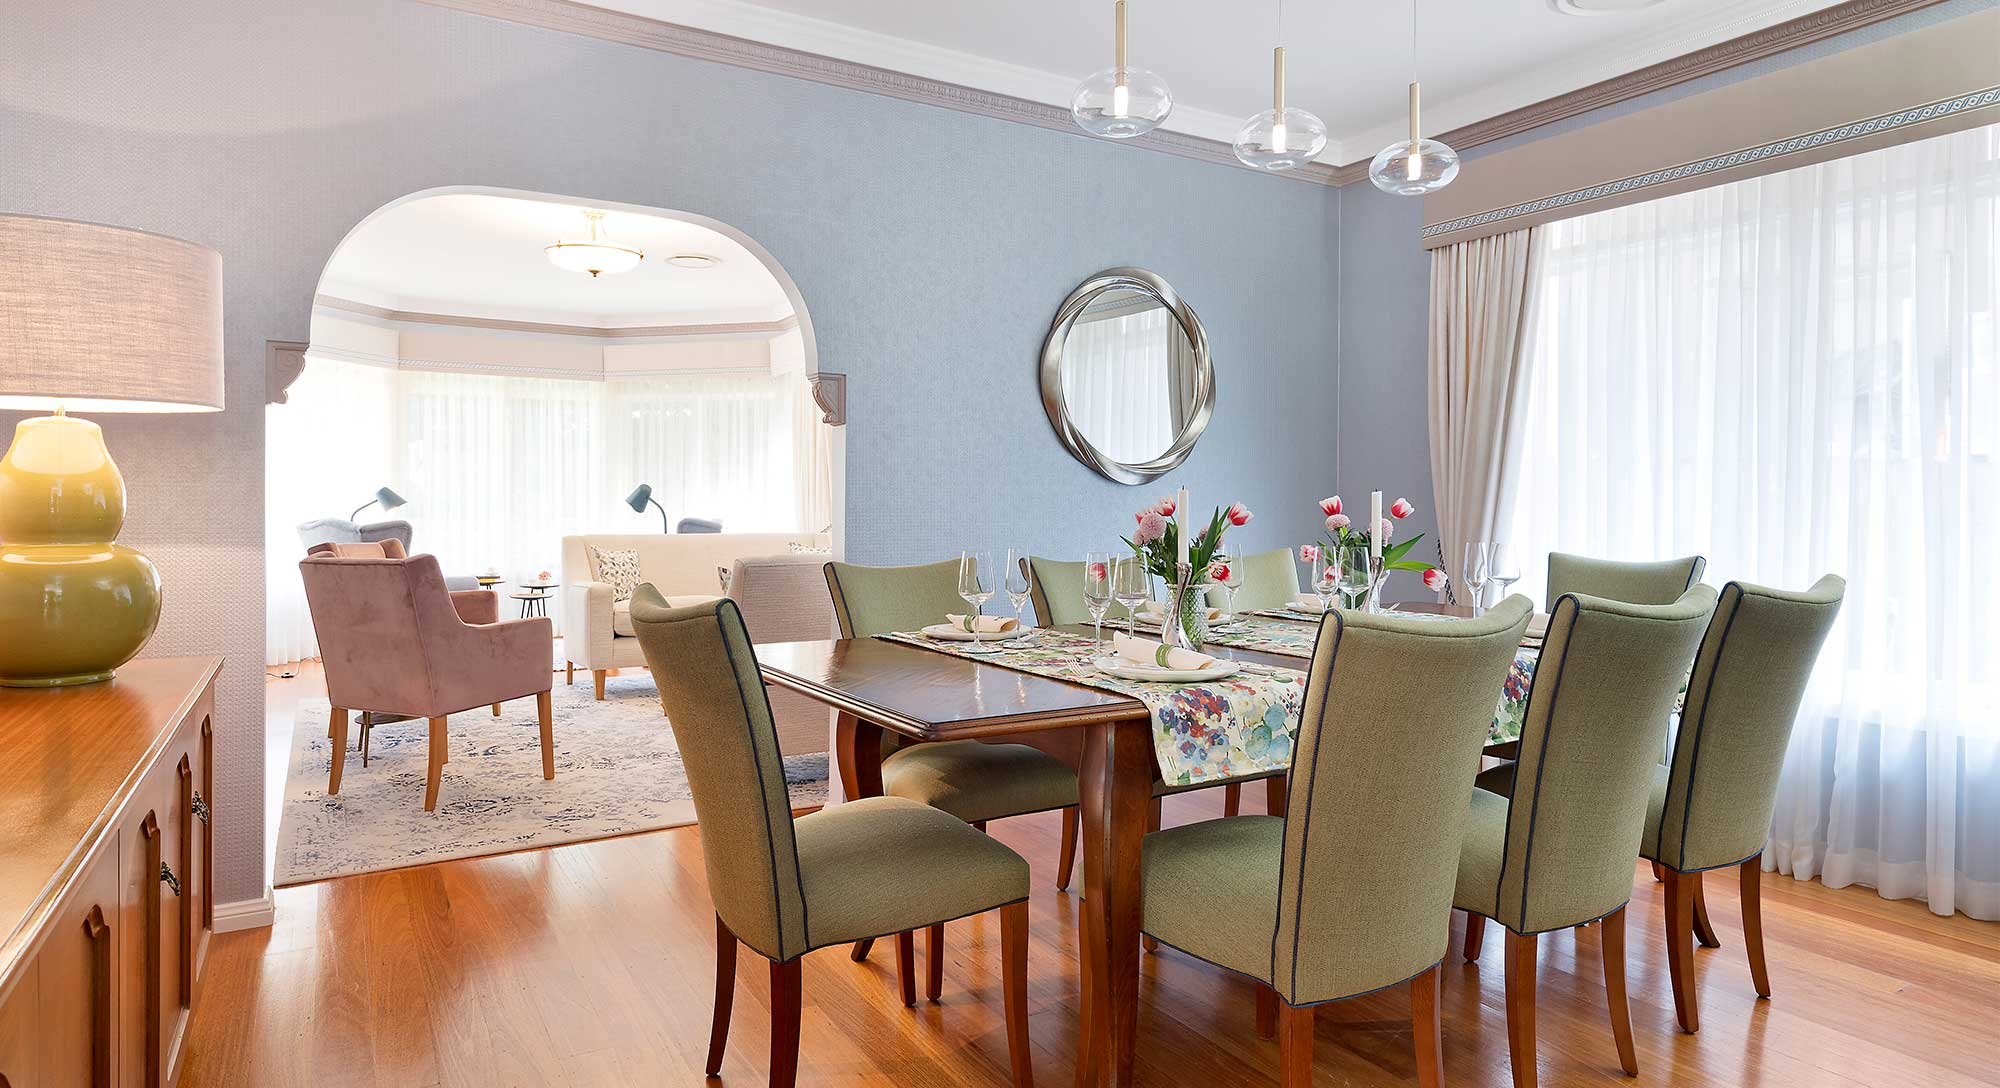 Dining Room set for Entertaining